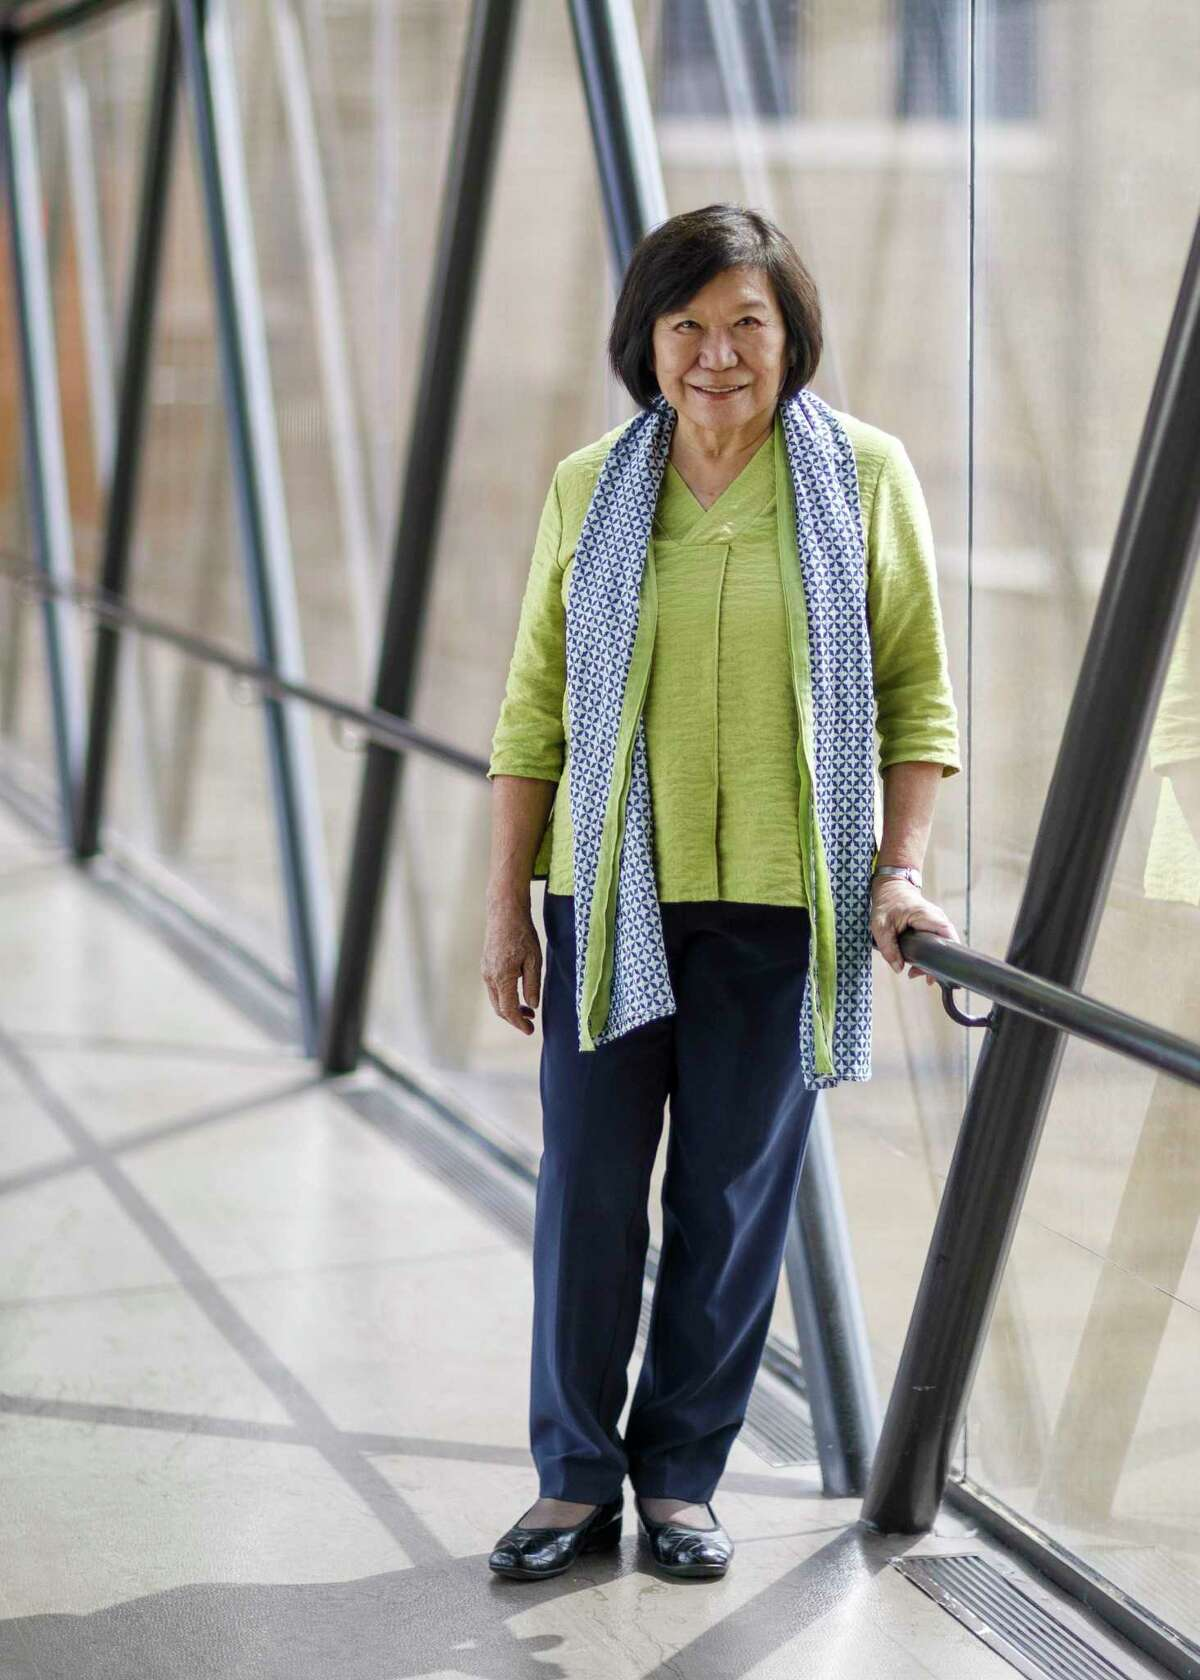 Co-Interim Director Dr. Emily Sano stands in the glass sky bridge that connects parts of San Antonio Museum of Art in San Antonio, Texas, Friday, Oct. 1, 2021. She joined the SAMA staff in January 2016 as the Coates-Cowden-Brown Senior Advisor for Asian Art.